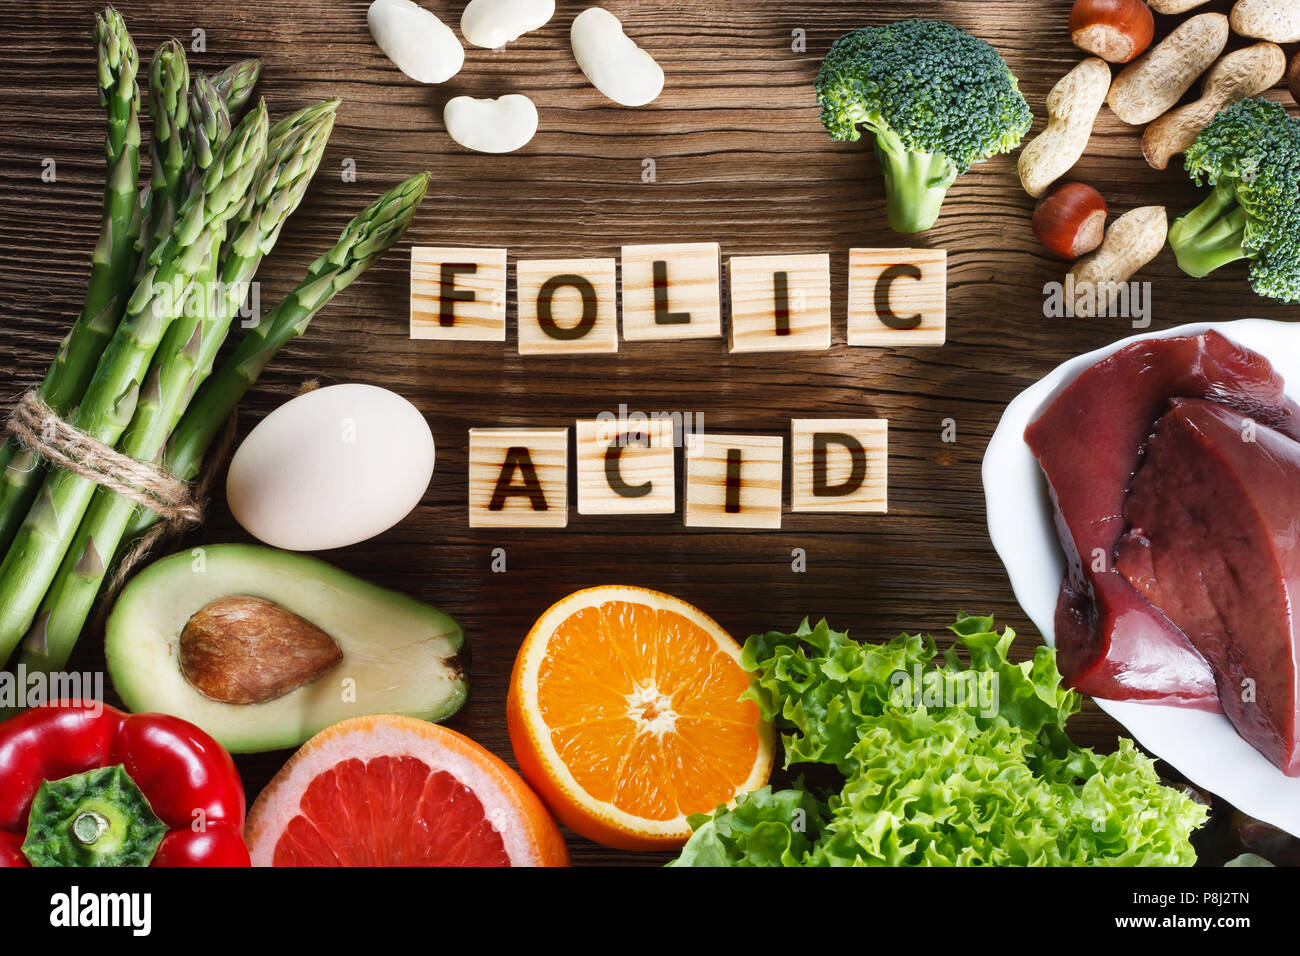 Natural sources of folic acid as liver, asparagus, broccoli, eggs, salad, avocado, paprika, nuts, orange, beetroots and beans - Stock Image